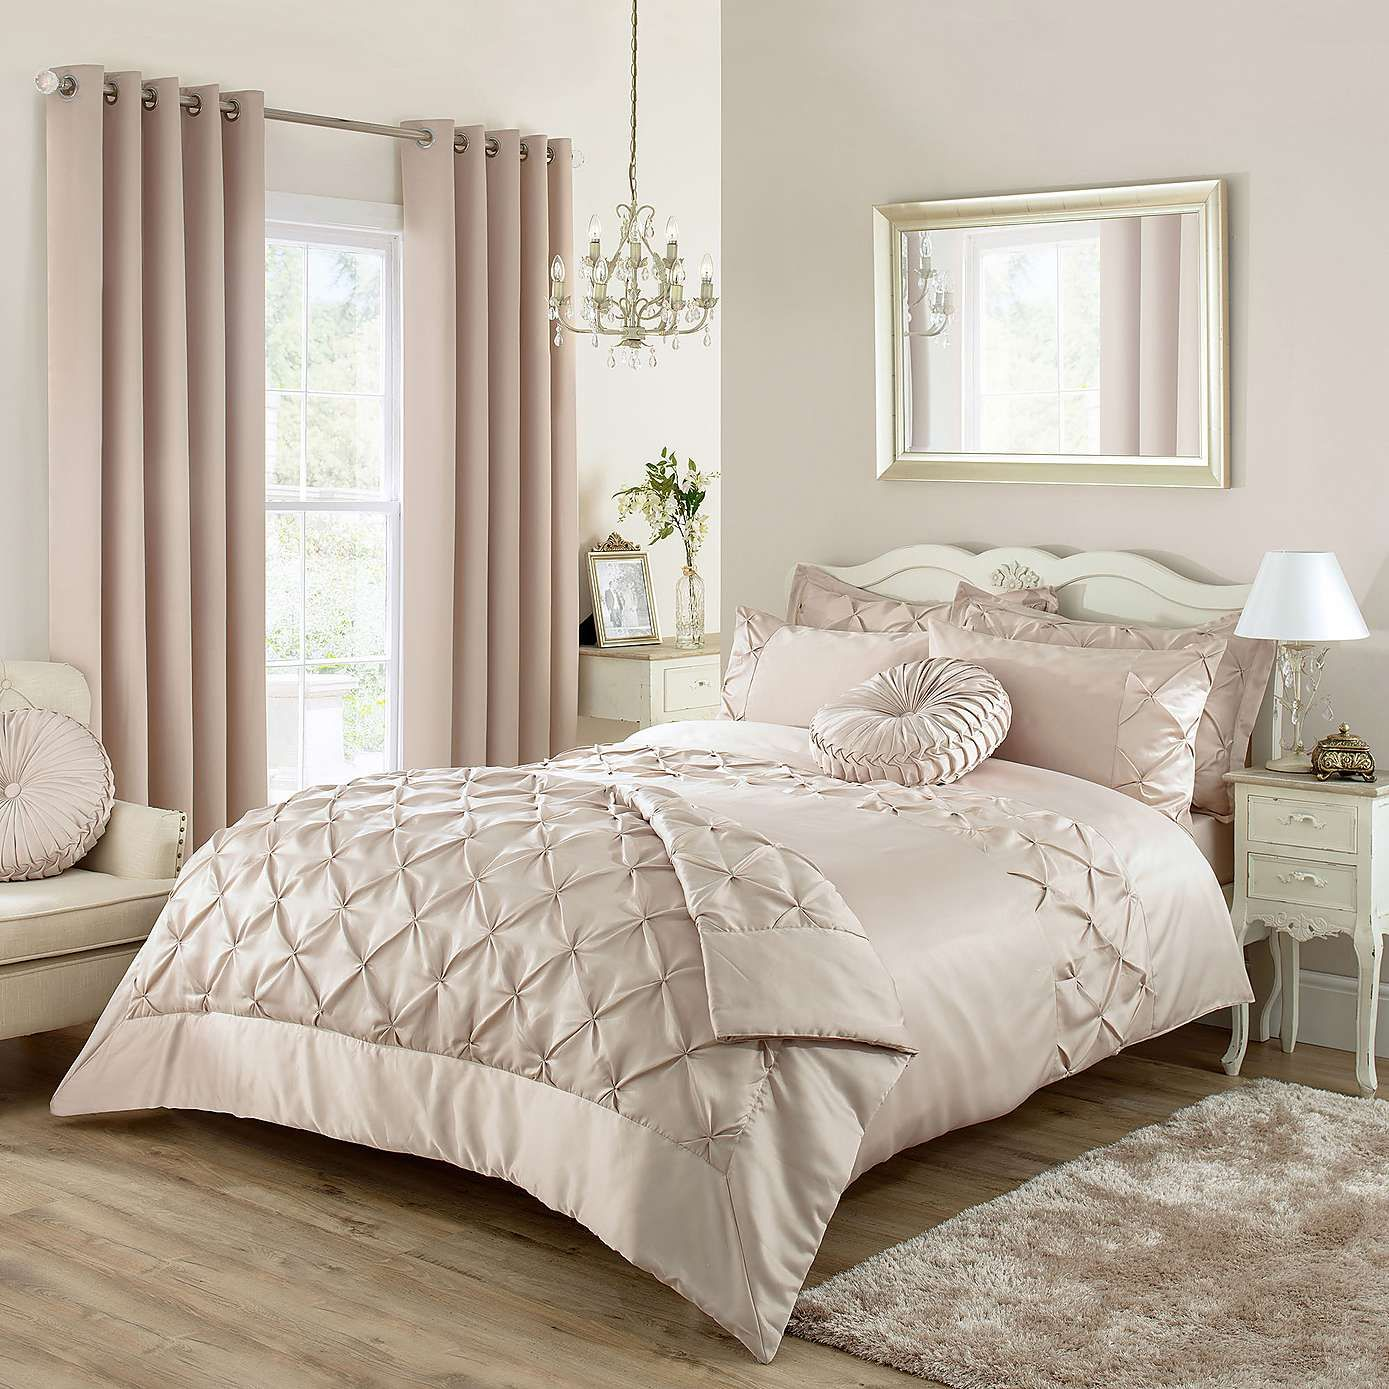 Karissa Embroidered Champagne Duvet Cover | Bed linen, Champagne and ...